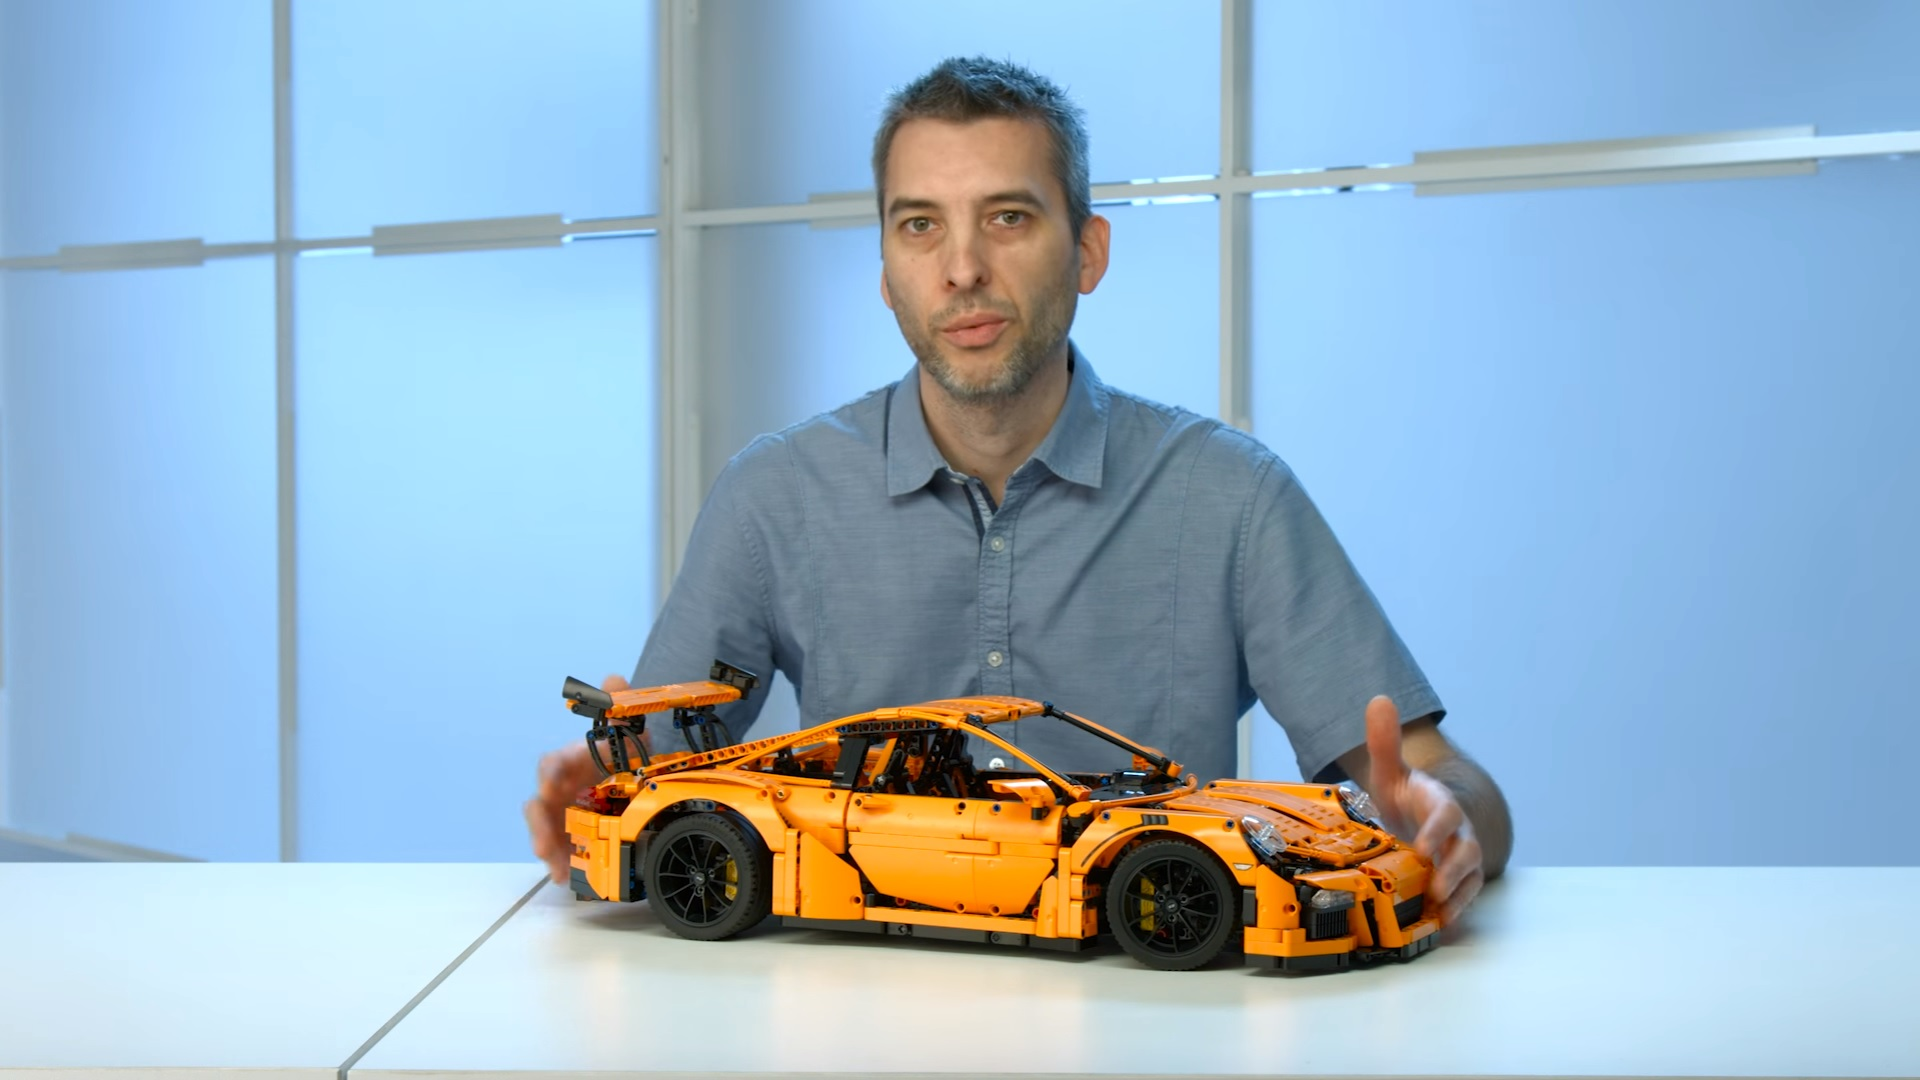 lego unveils the stunning 42056 technic porsche 911 gt3 rs. Black Bedroom Furniture Sets. Home Design Ideas